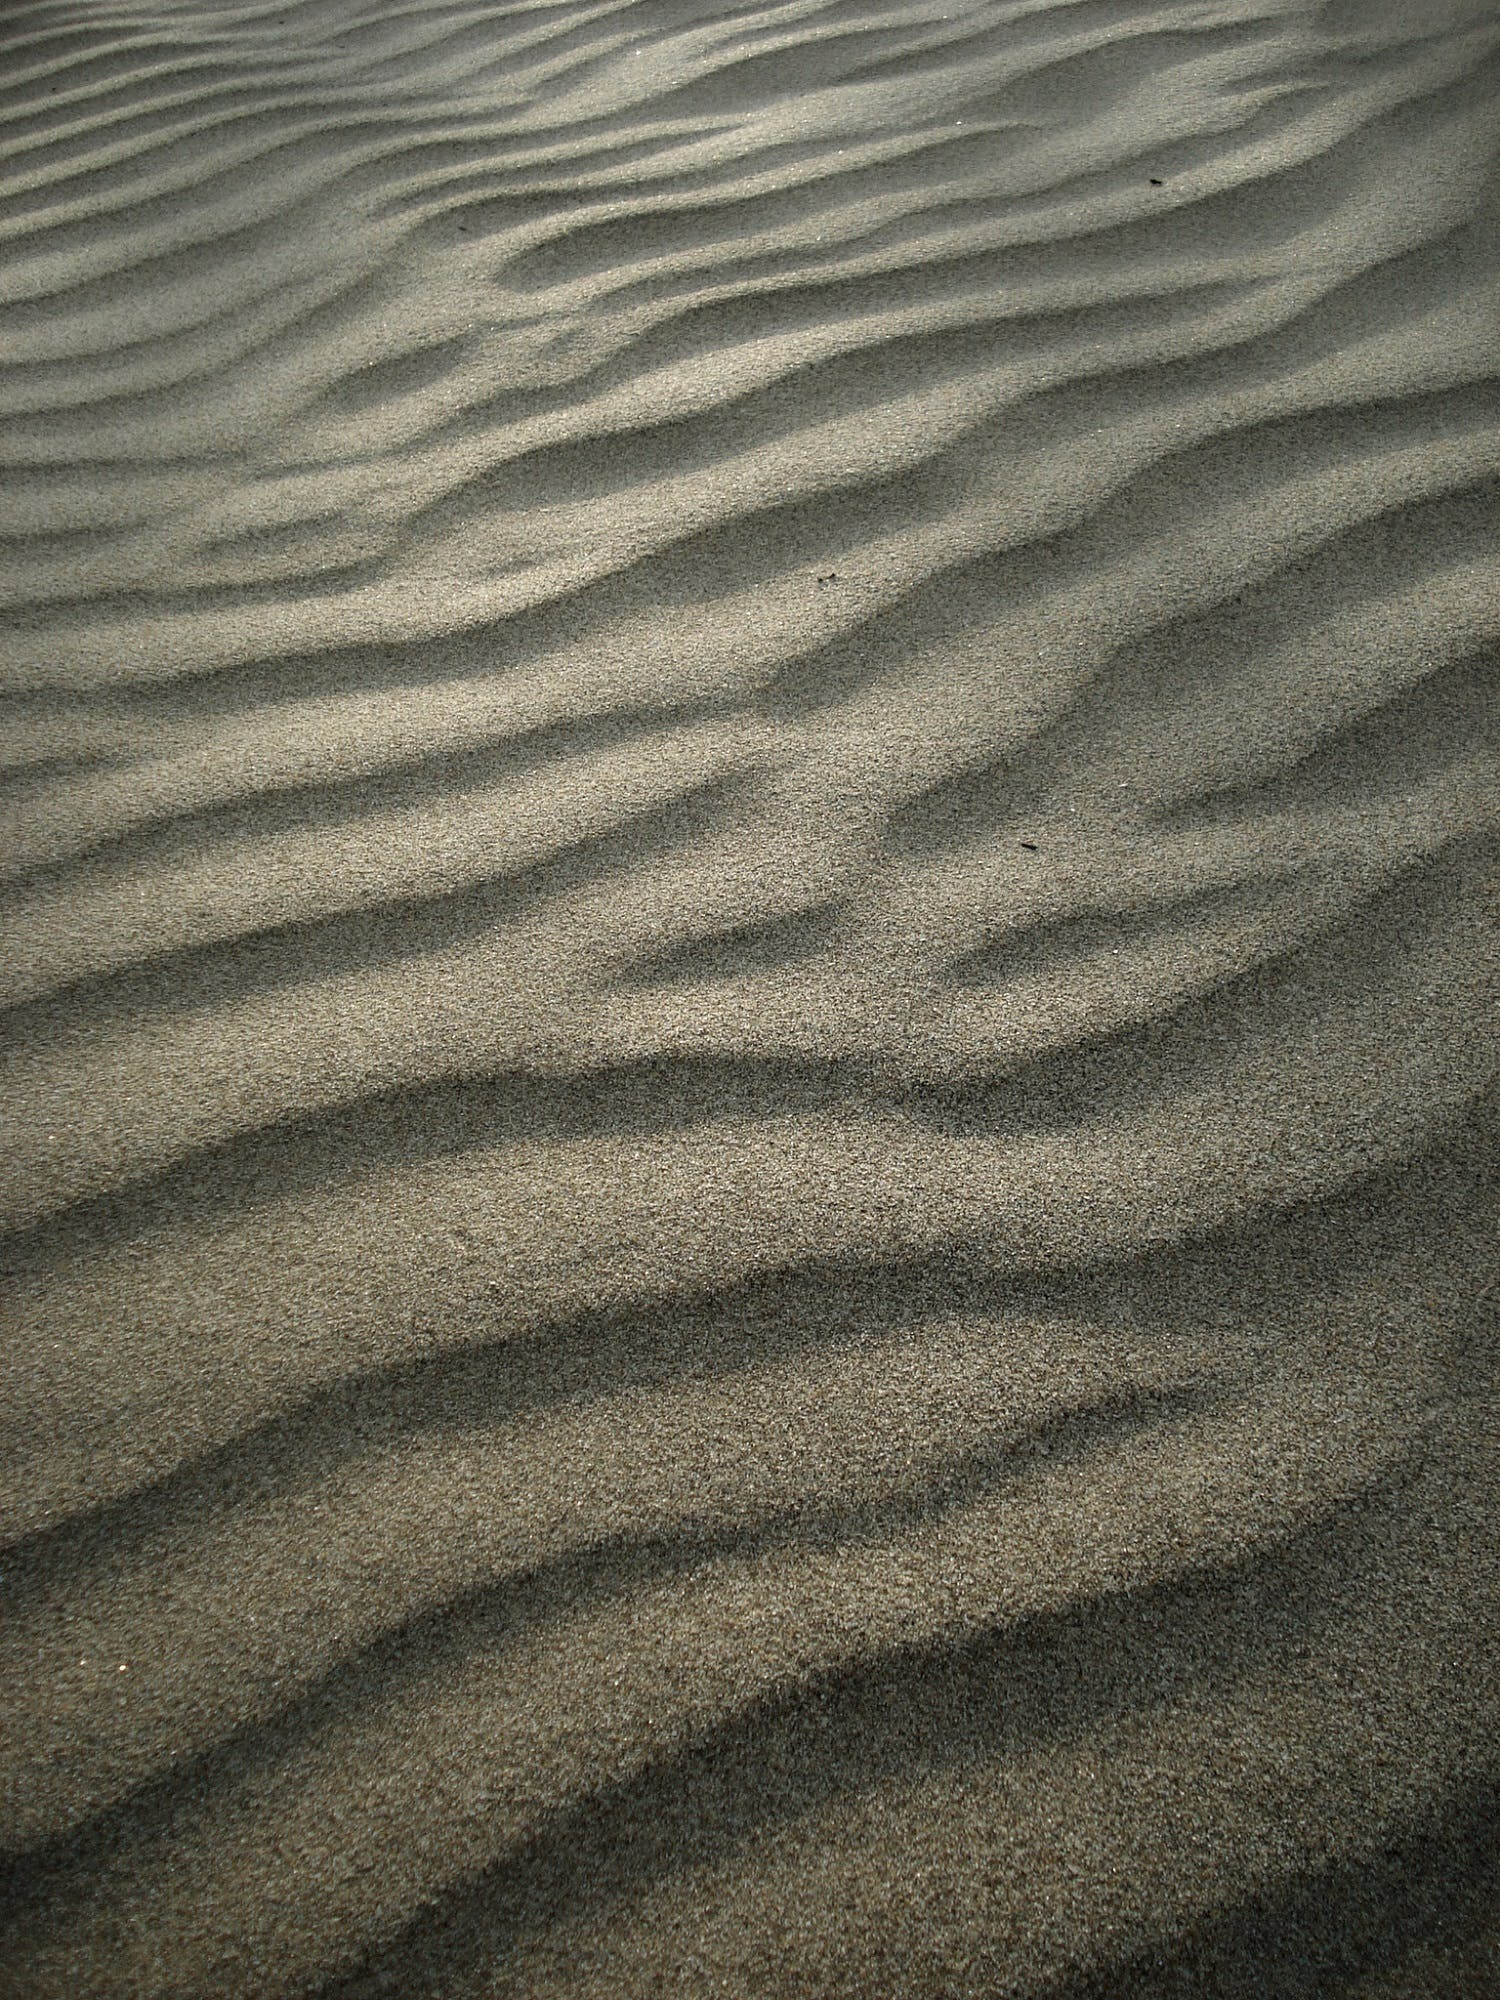 Free stock photo of sand